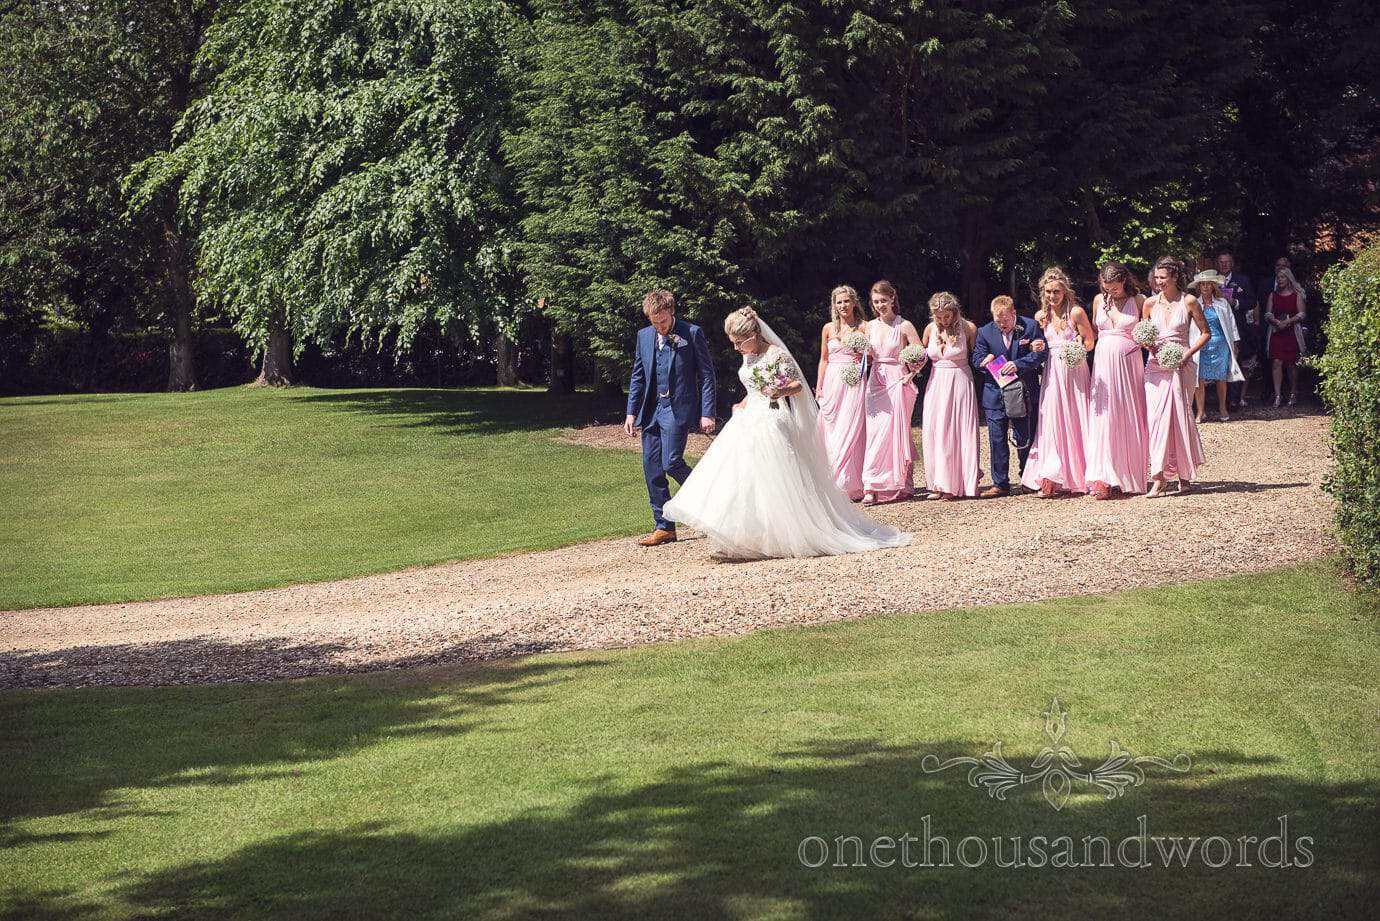 Bride and groom lead bridesmaids in pink and wedding party to country wedding